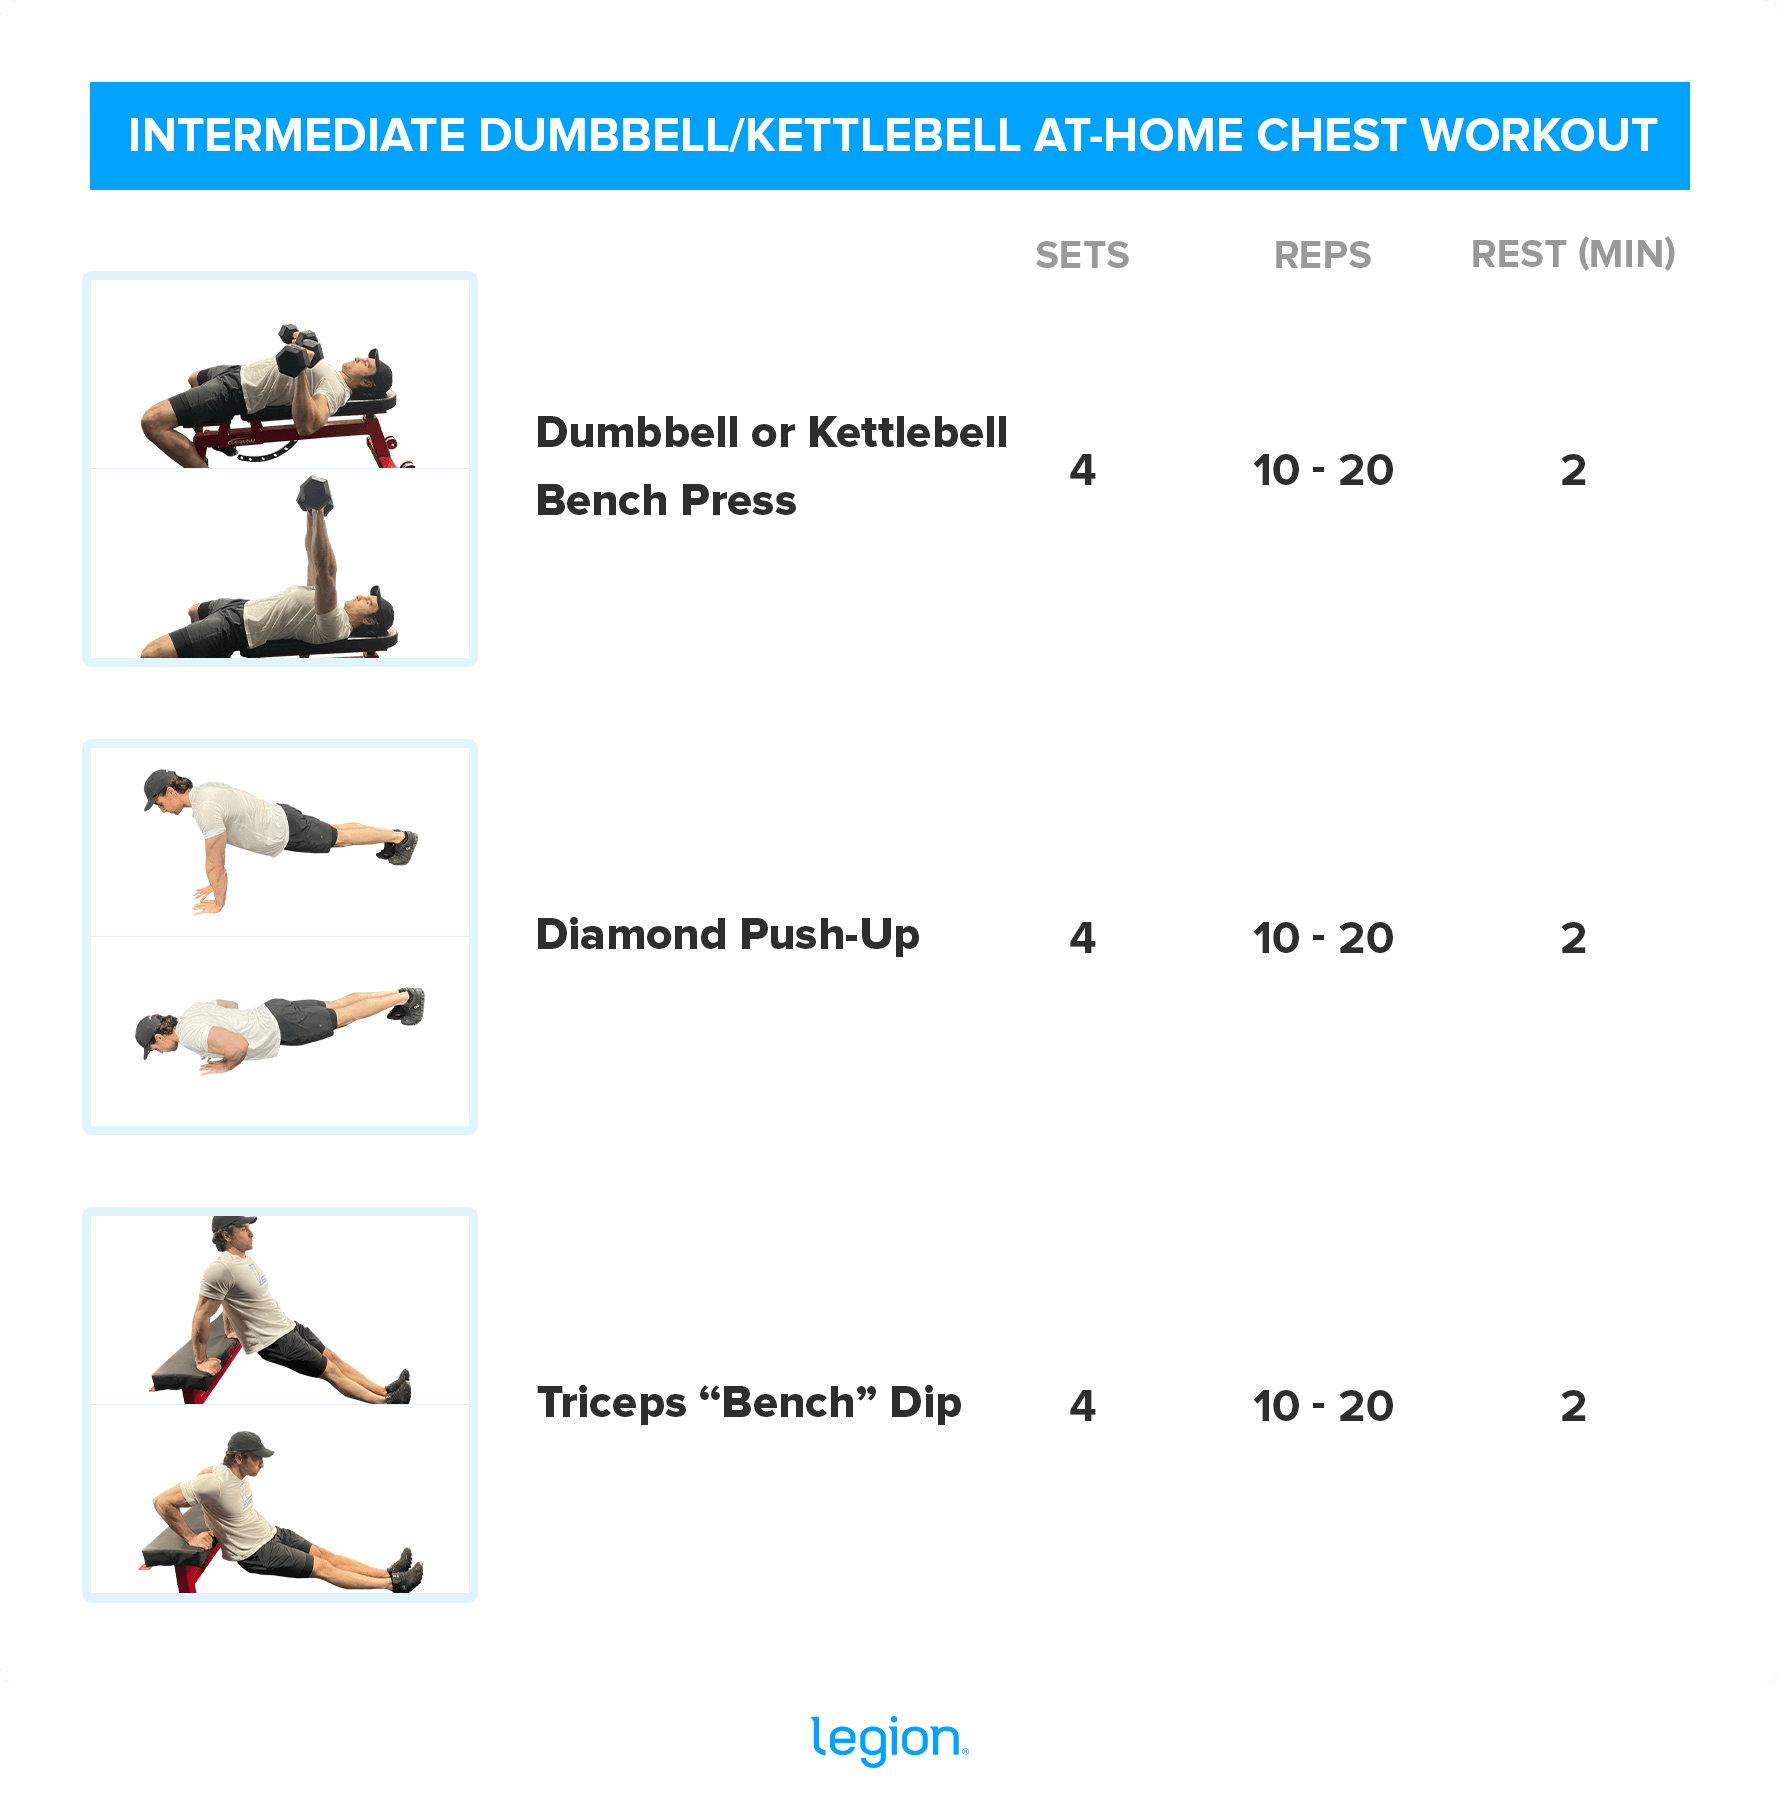 INTERMEDIATE DUMBBELL/KETTLEBELL AT-HOME CHEST WORKOUT